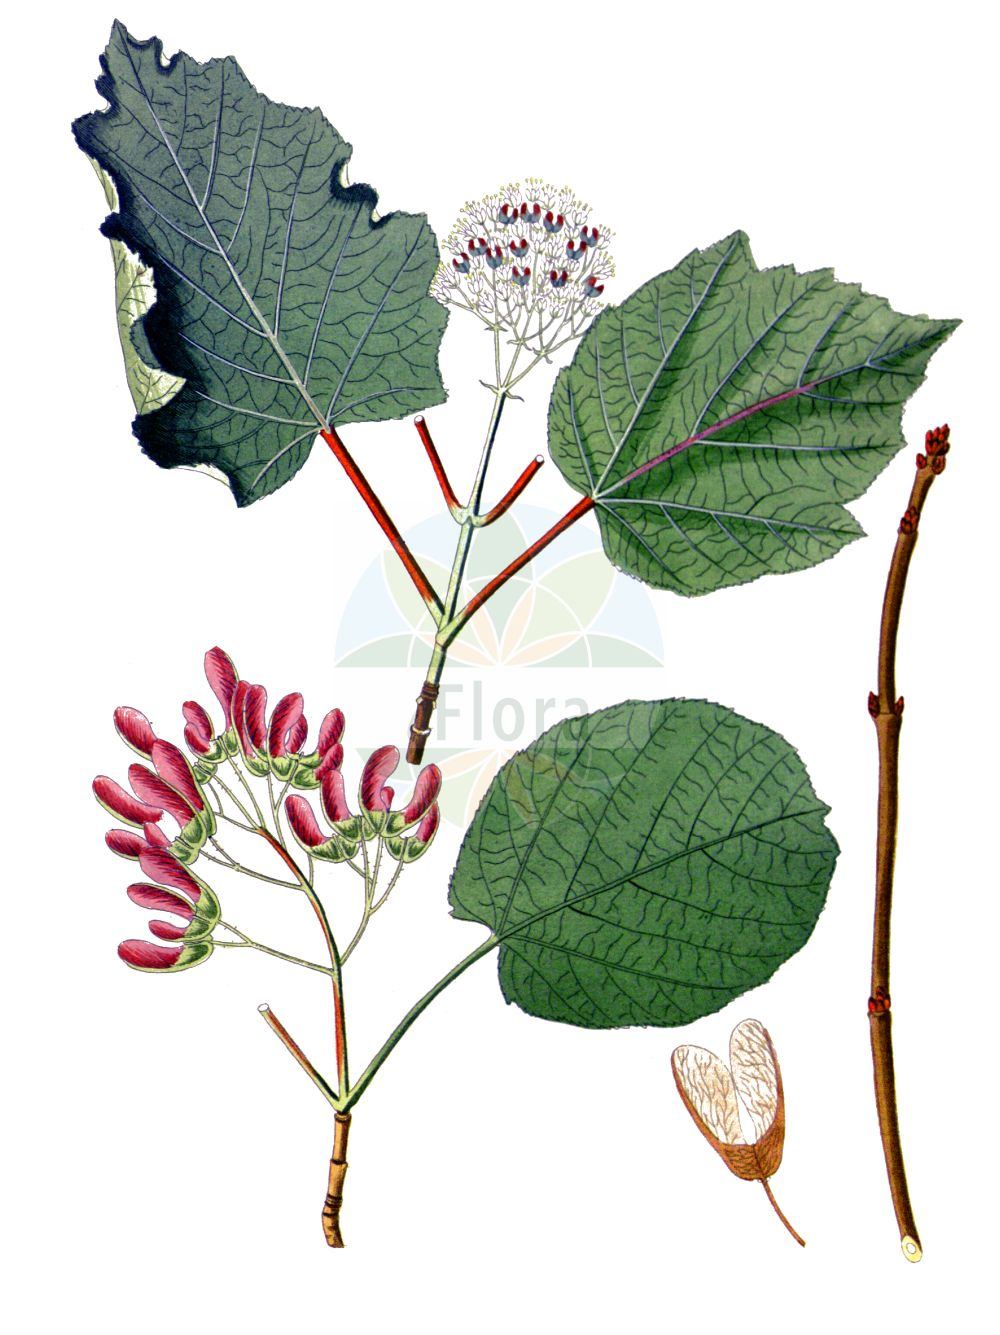 Historische Abbildung von Acer tataricum. Das Bild zeigt Blatt, Bluete, Frucht und Same. ---- Historical Drawing of Acer tataricum.The image is showing leaf, flower, fruit and seed.(Acer tataricum,Acer tataricum,Acer,Ahorn,Maple,Sapindaceae,Seifenbaumgewaechse,Soapberry family,Blatt,Bluete,Frucht,Same,leaf,flower,fruit,seed,Krauss (1802f))